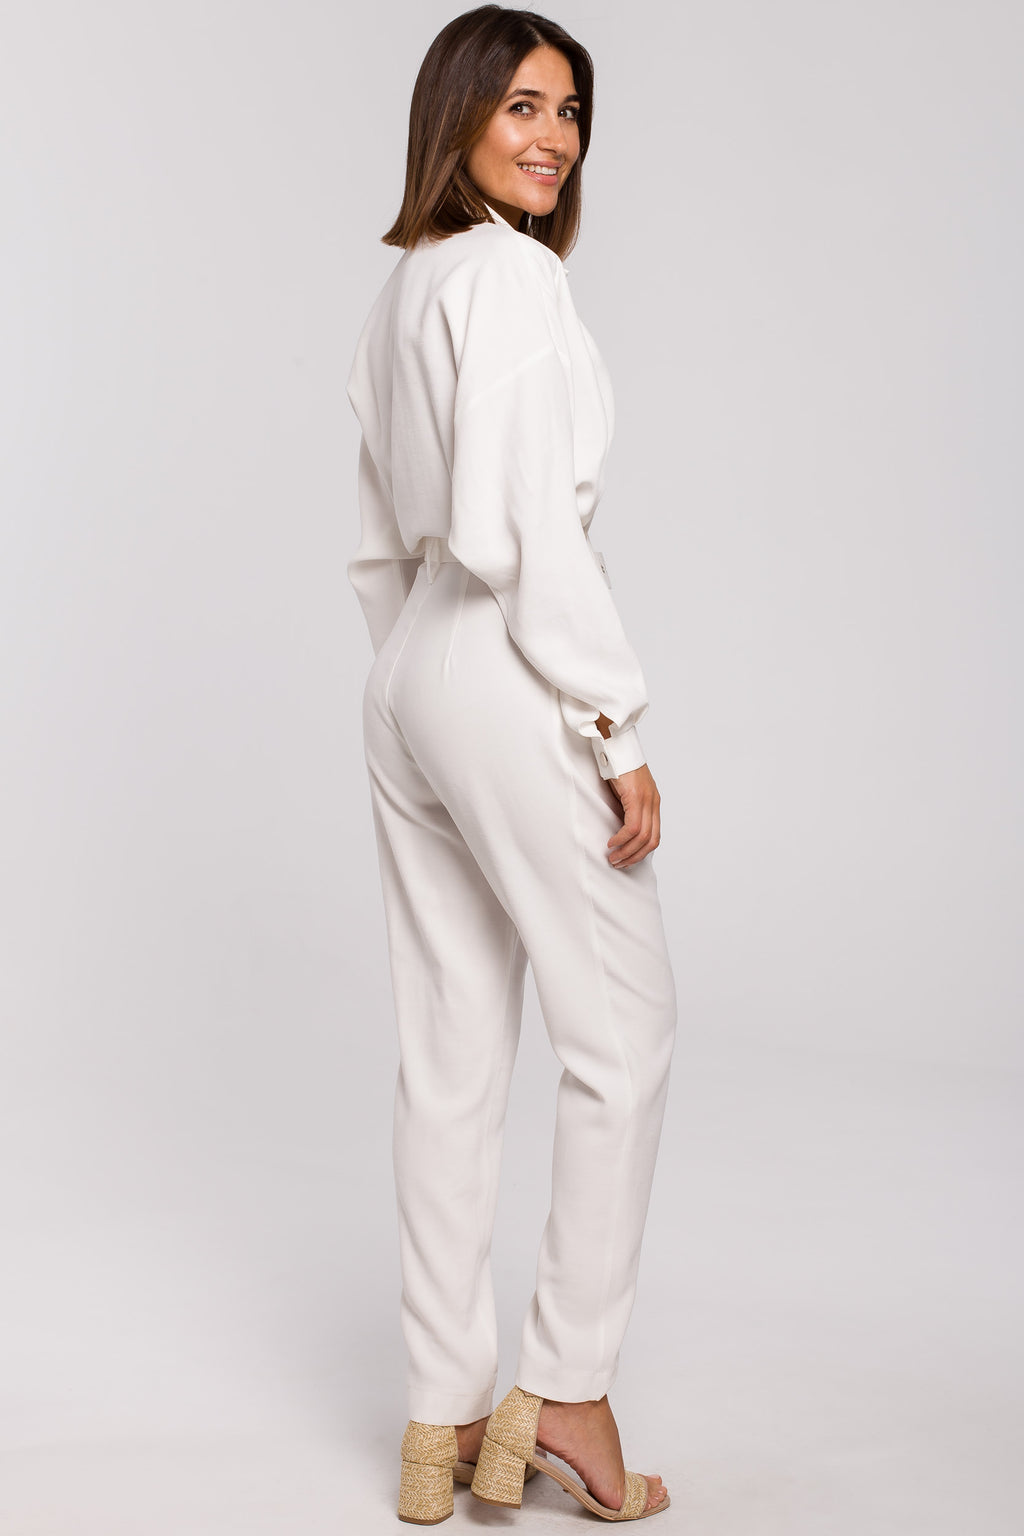 Ecru Utility Jumpsuit - So Chic Boutique